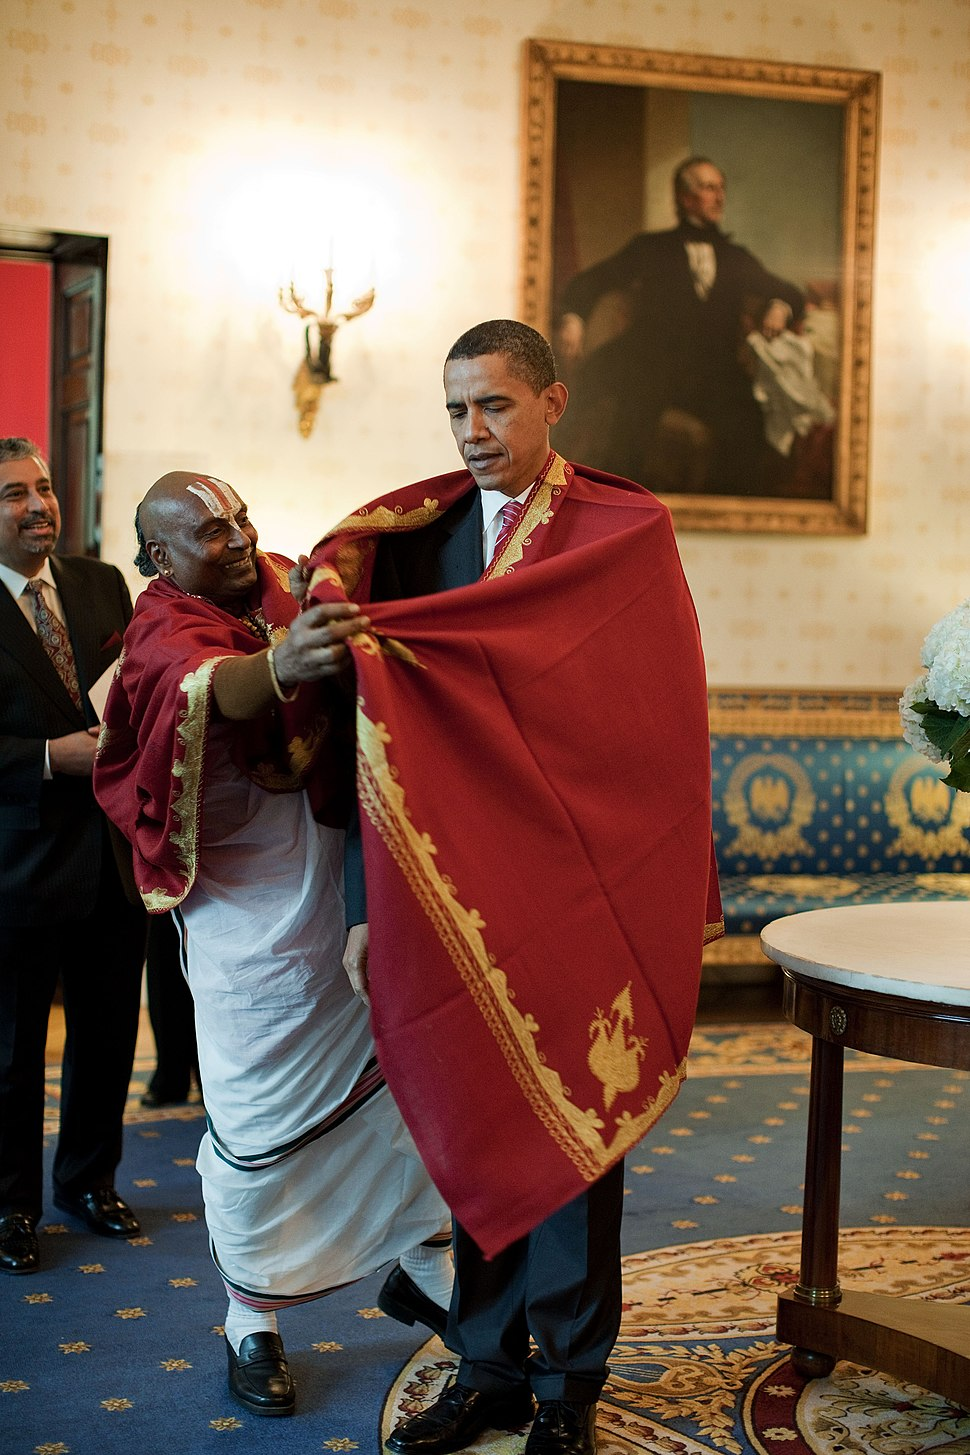 Barack Obama receives a red shawl from Sri Narayanachar Digalakote, a Hindu priest